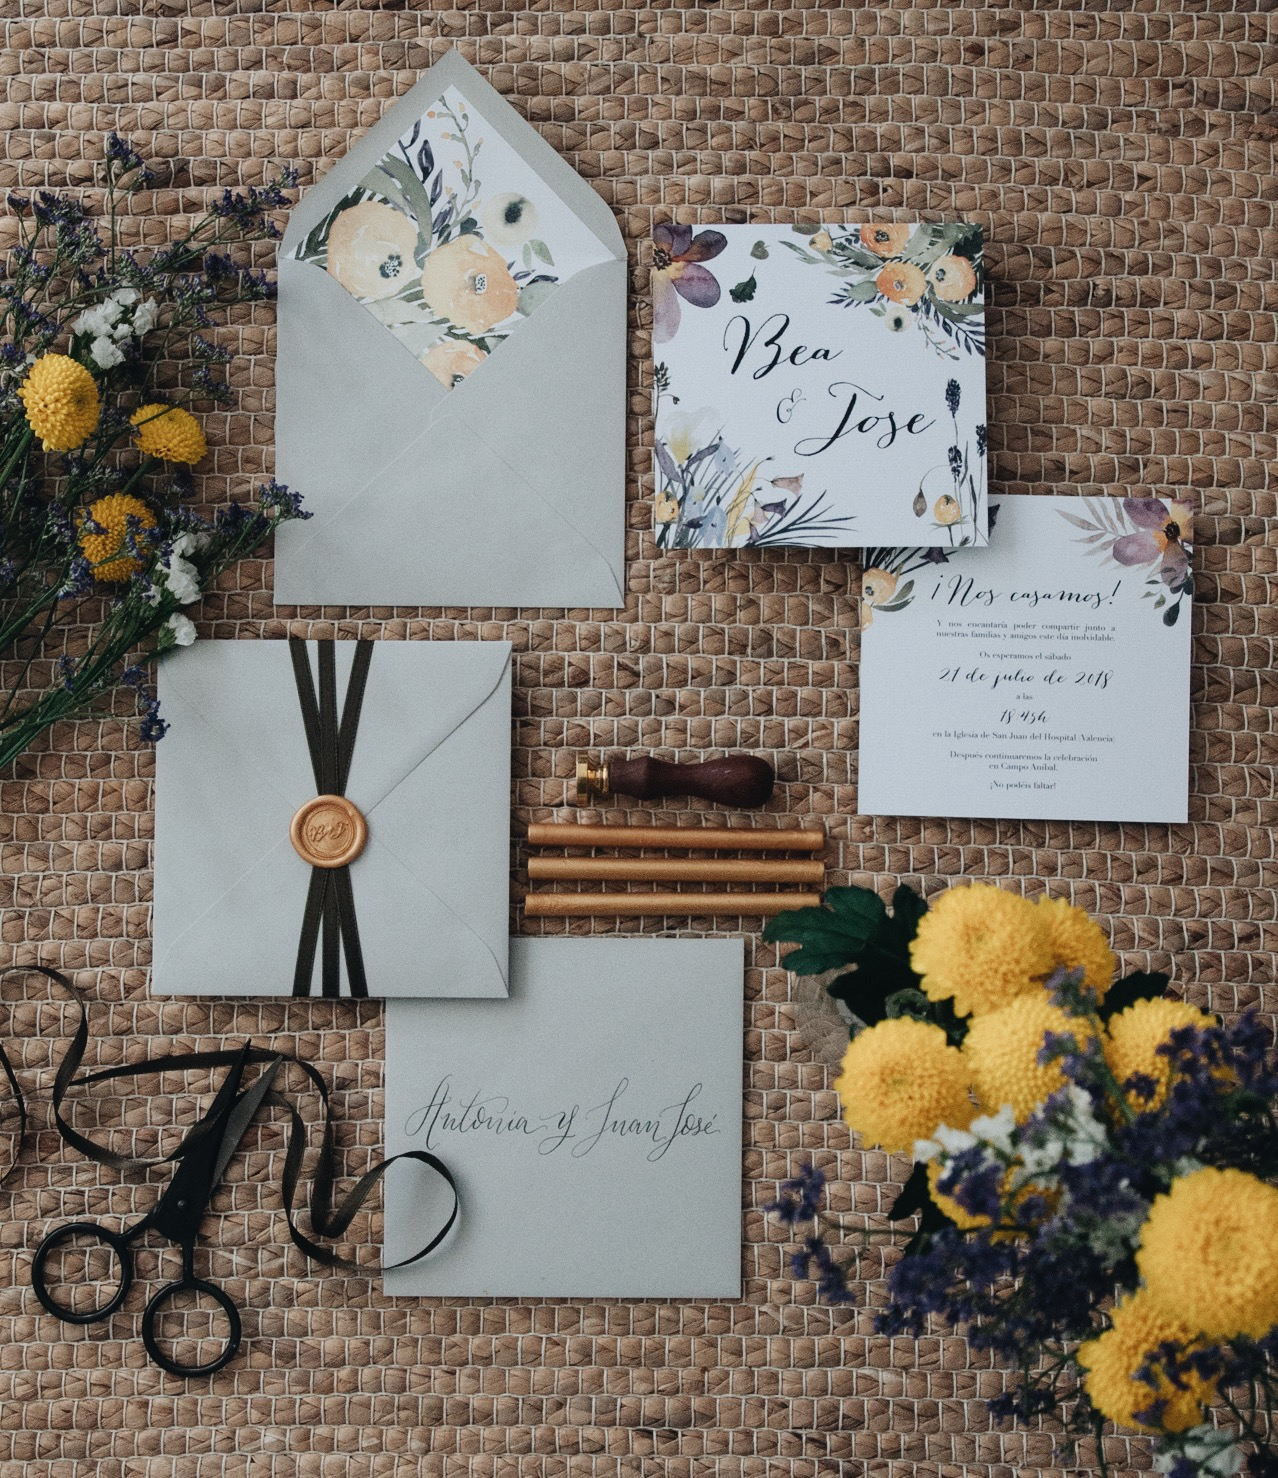 B+J INVITATIONS-17411-macarenagea